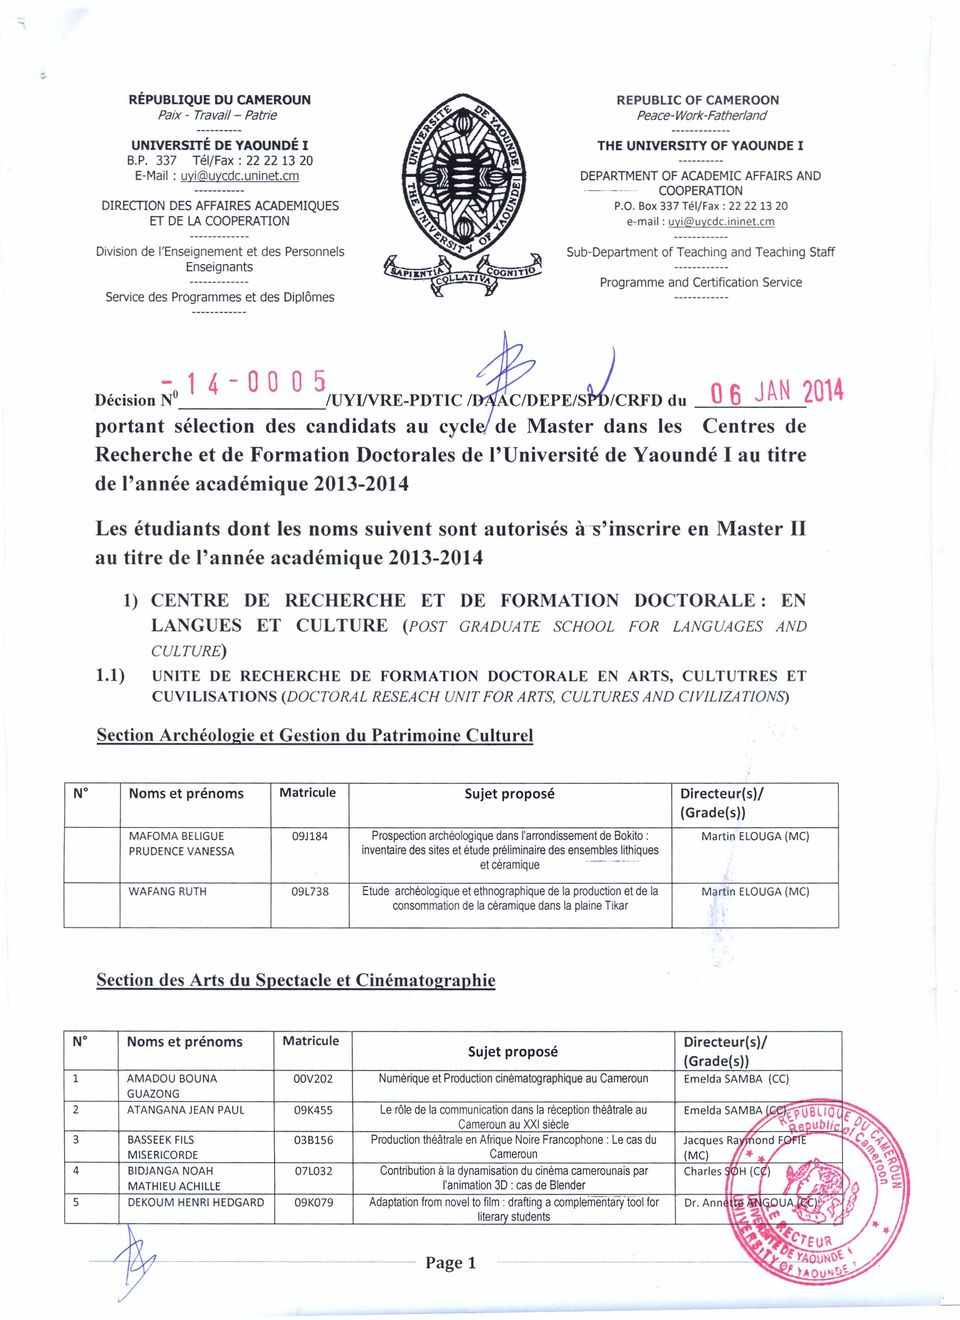 THE UNIVERSITY OF YAOUNDE 1 DEPARTMENT OF ACADEMIC AFFAIRS AND ------- COOPERATION P.O. Box 337 Tél/Fax: 22 22 13 20 e-mail: Sub-Department uyi@uycdc.ininet.